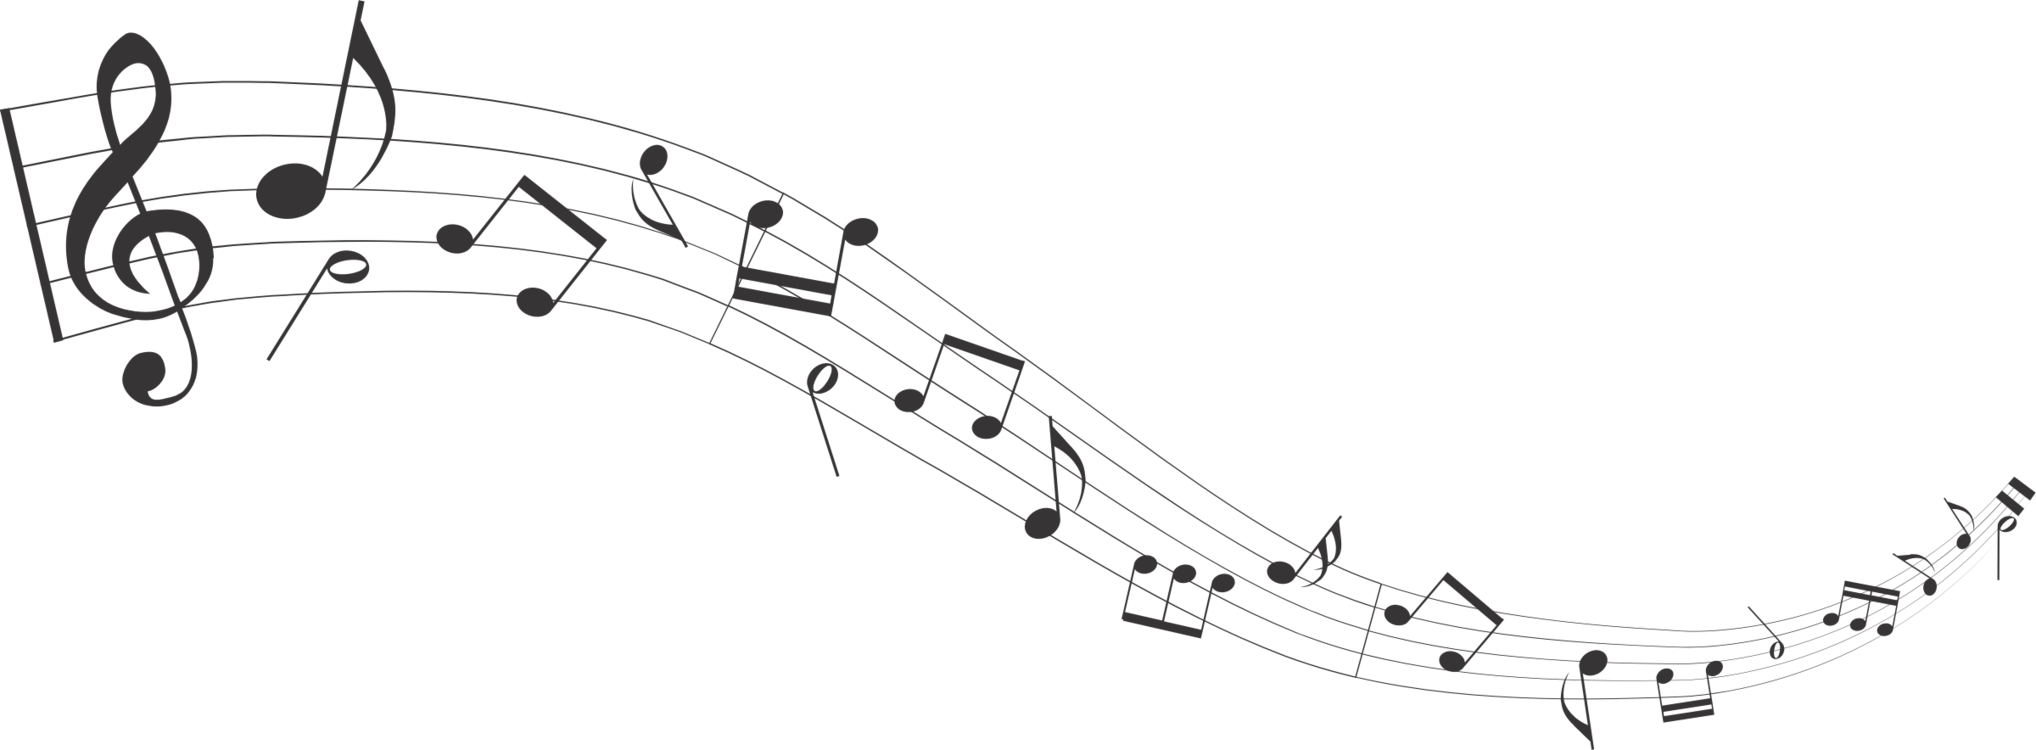 Note clipart music staff. Musical sheet notation free